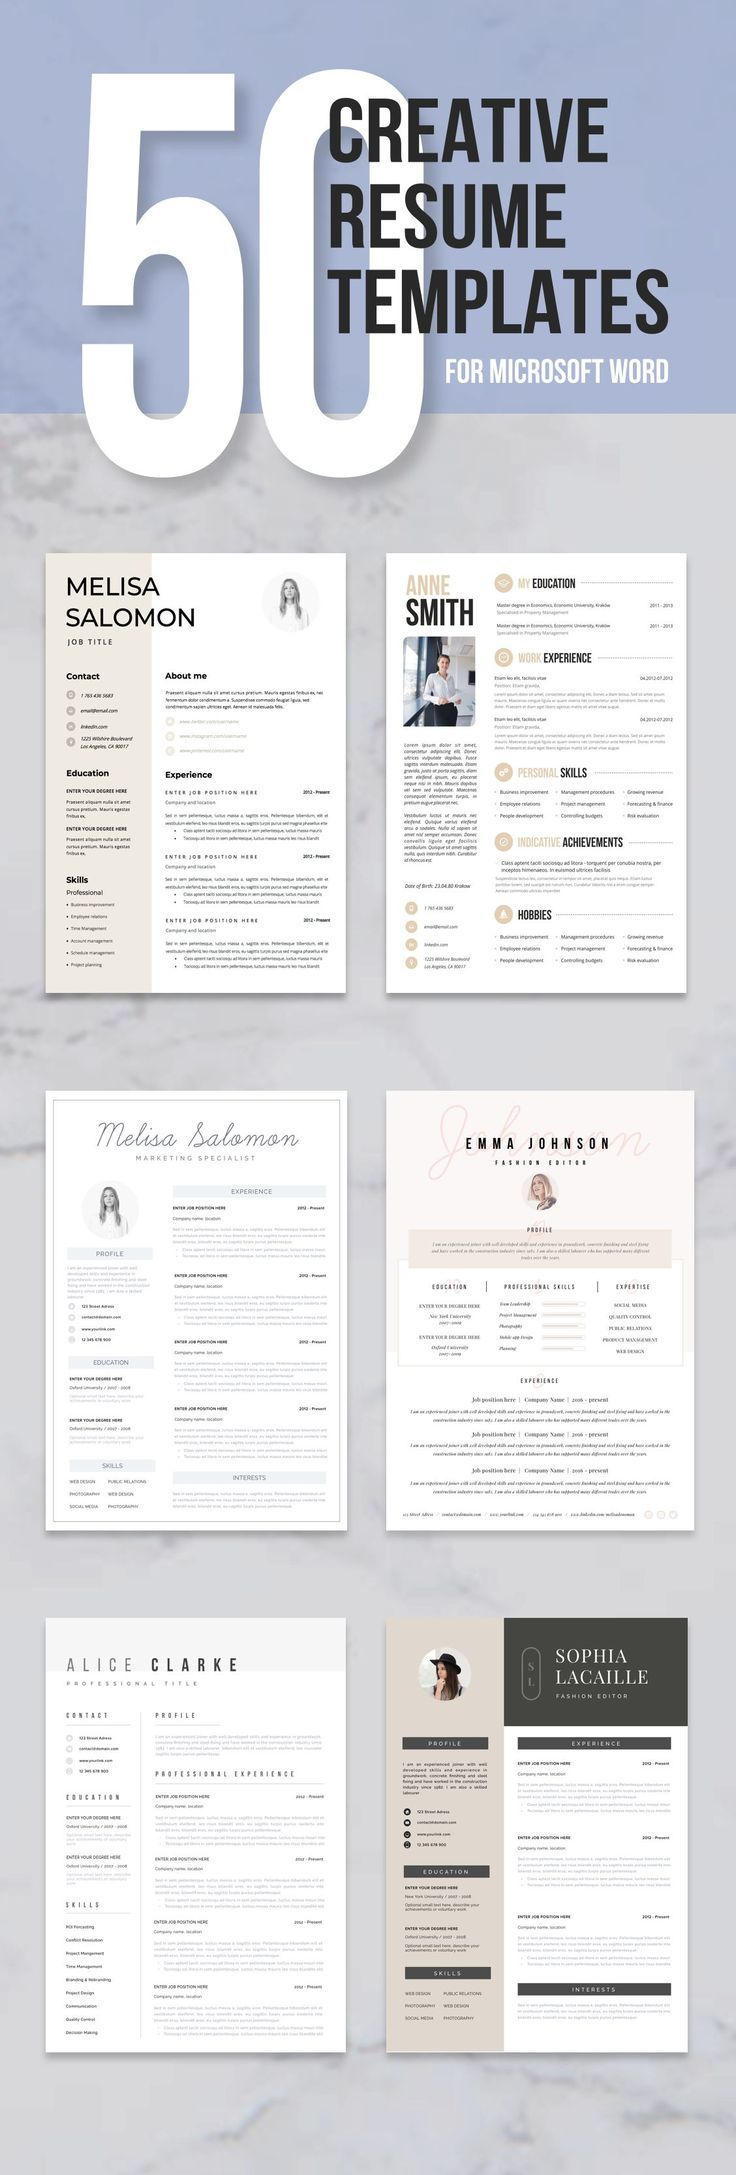 50 professional and creative Microsoft Word resume